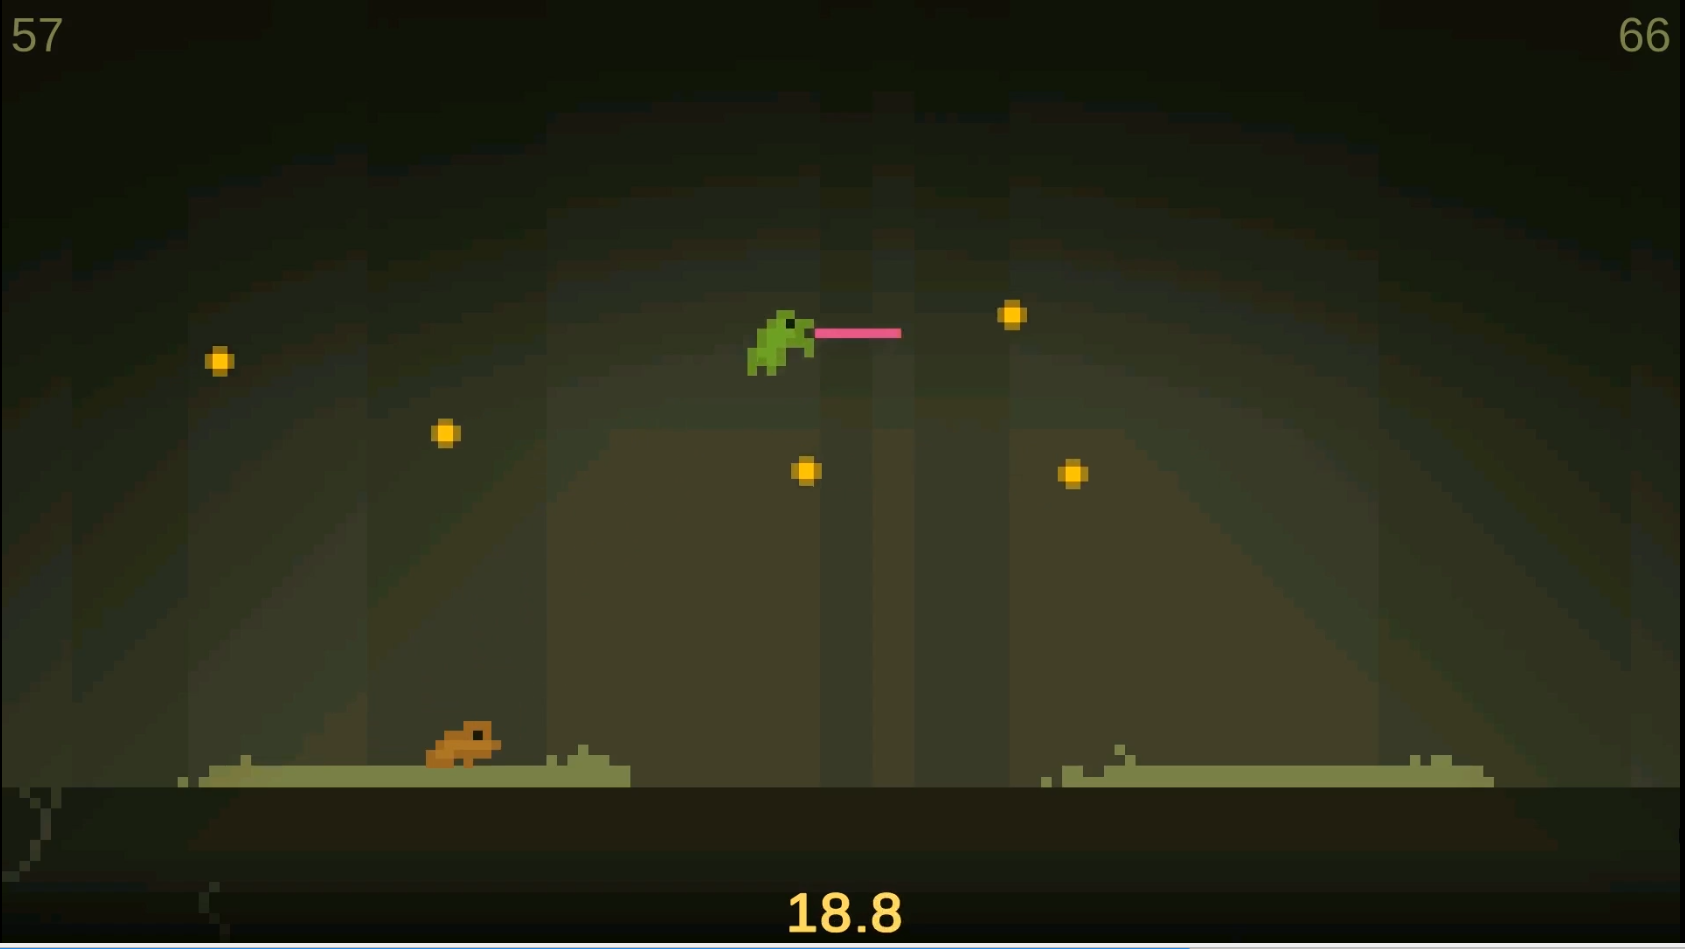 Toads and Fireflies style of game example